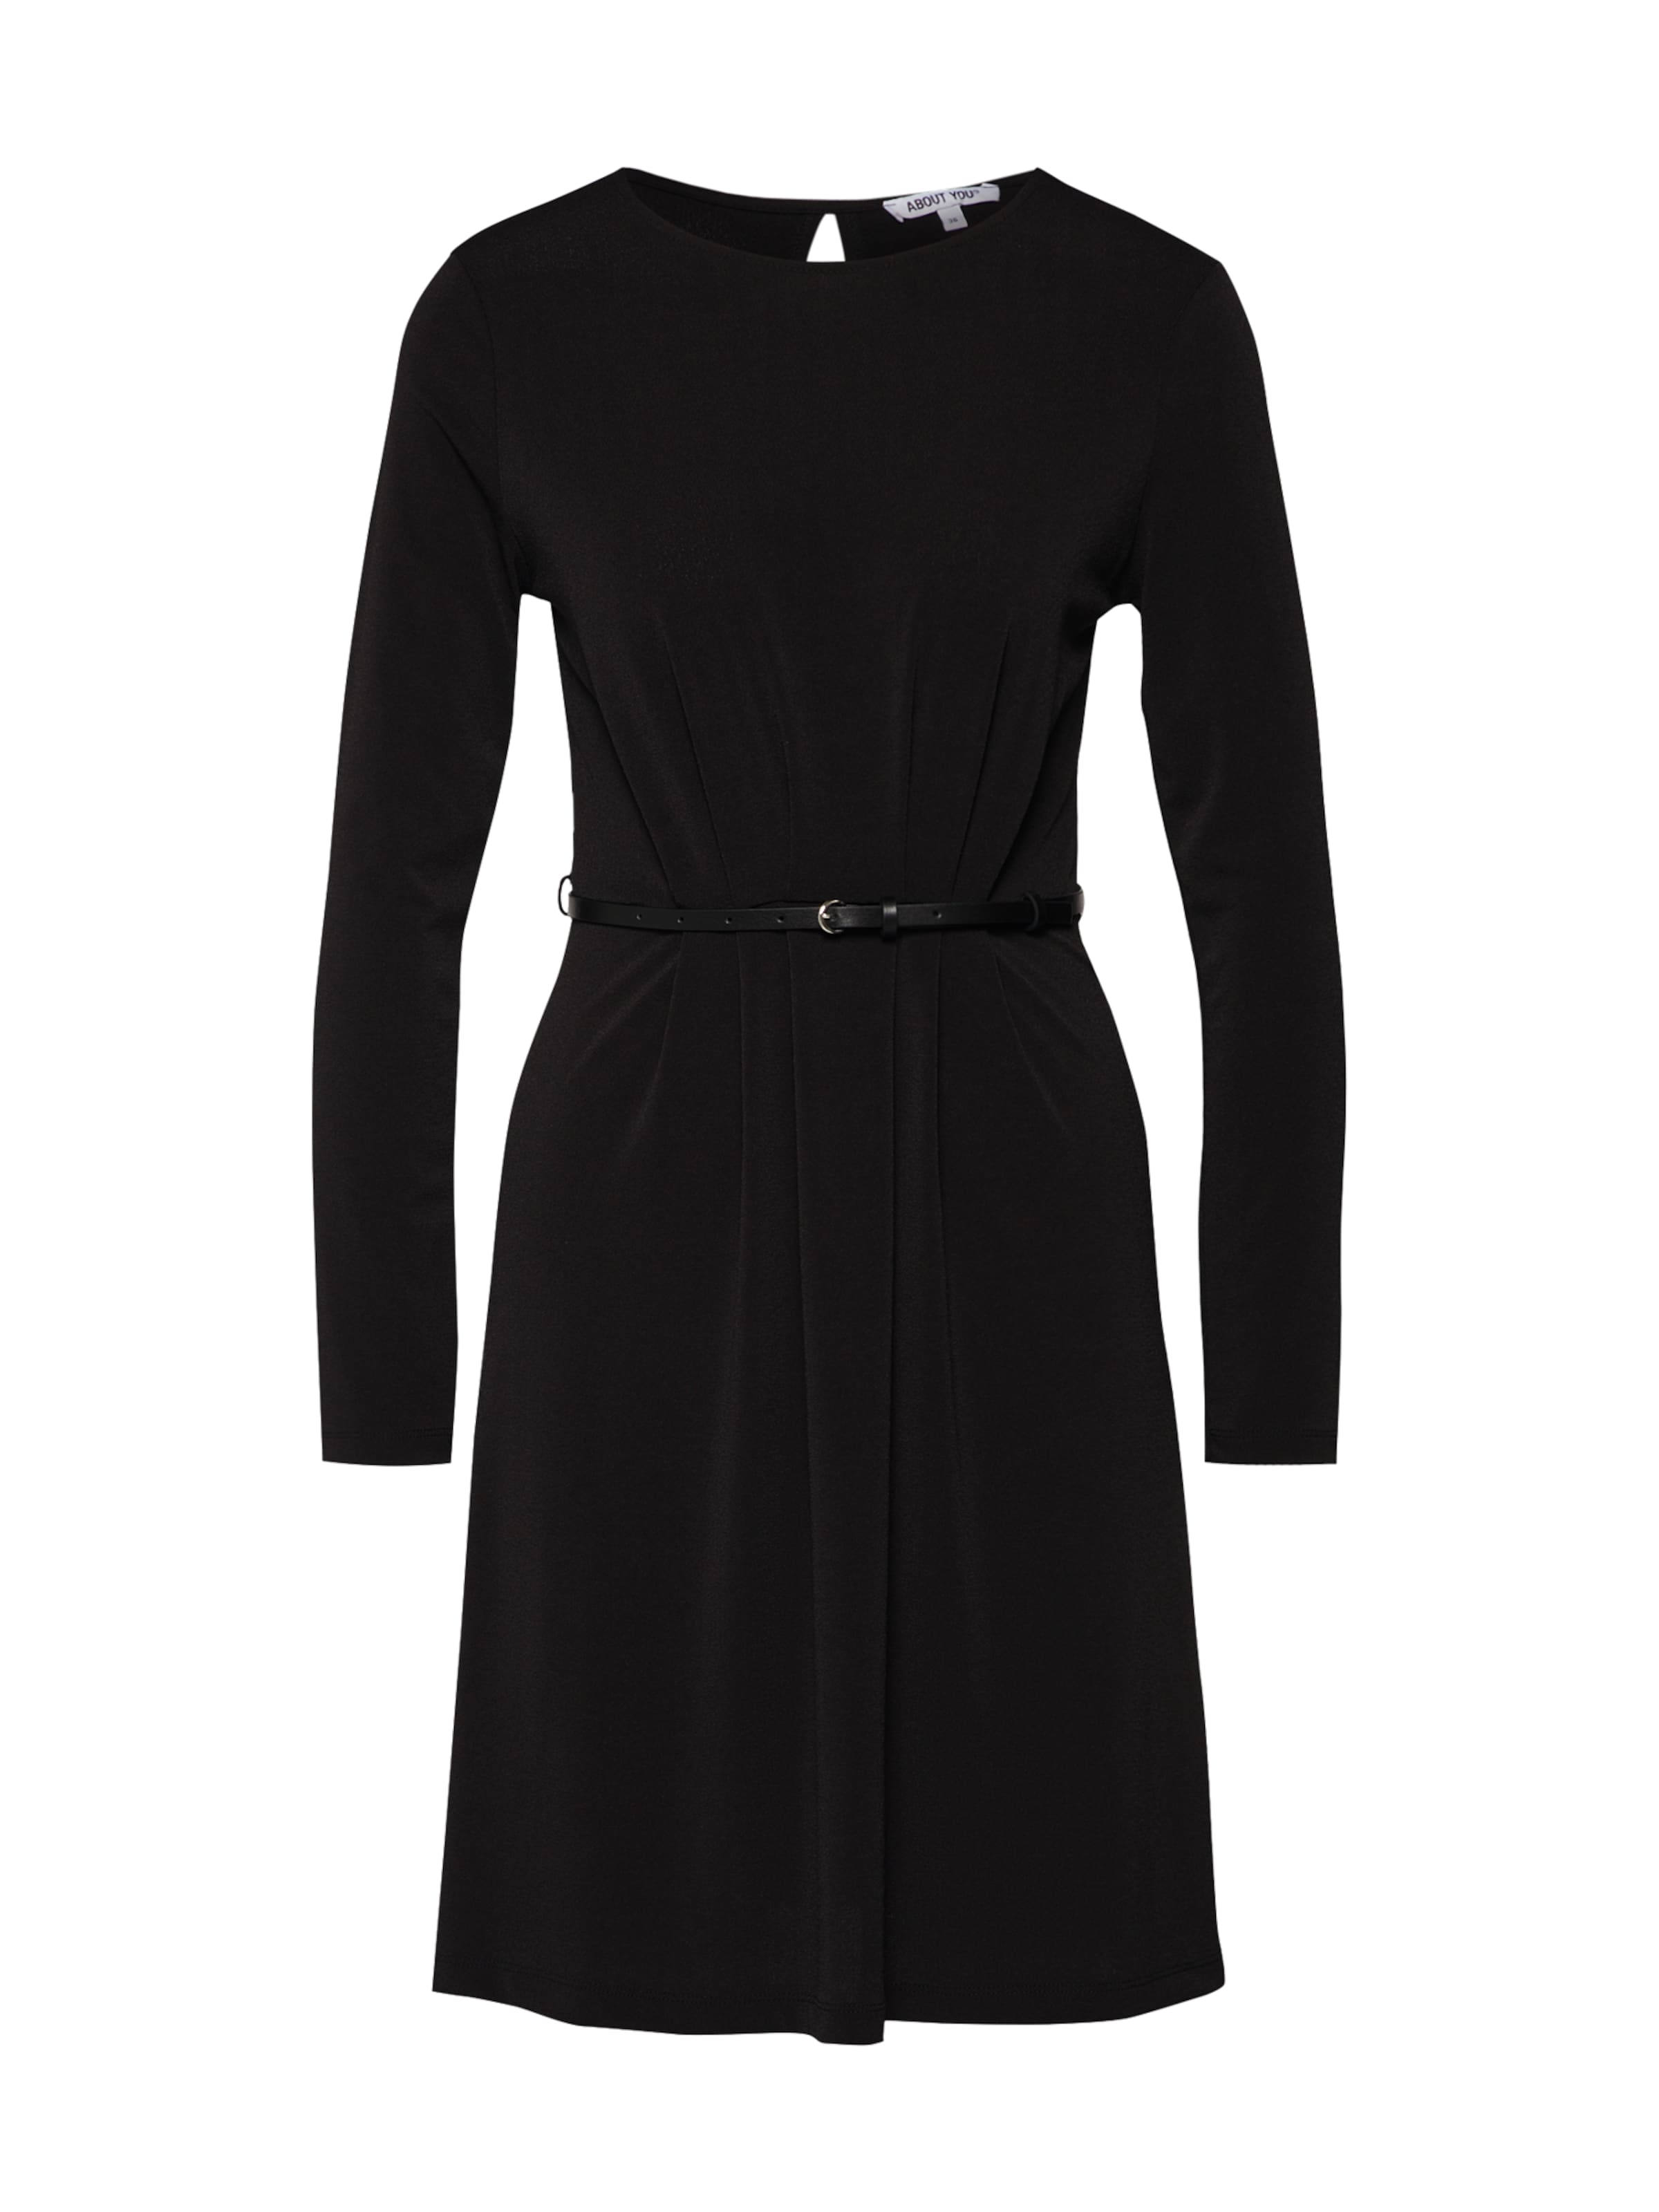 You Dress' About In Kleid 'alva Schwarz EHbeWDIY92